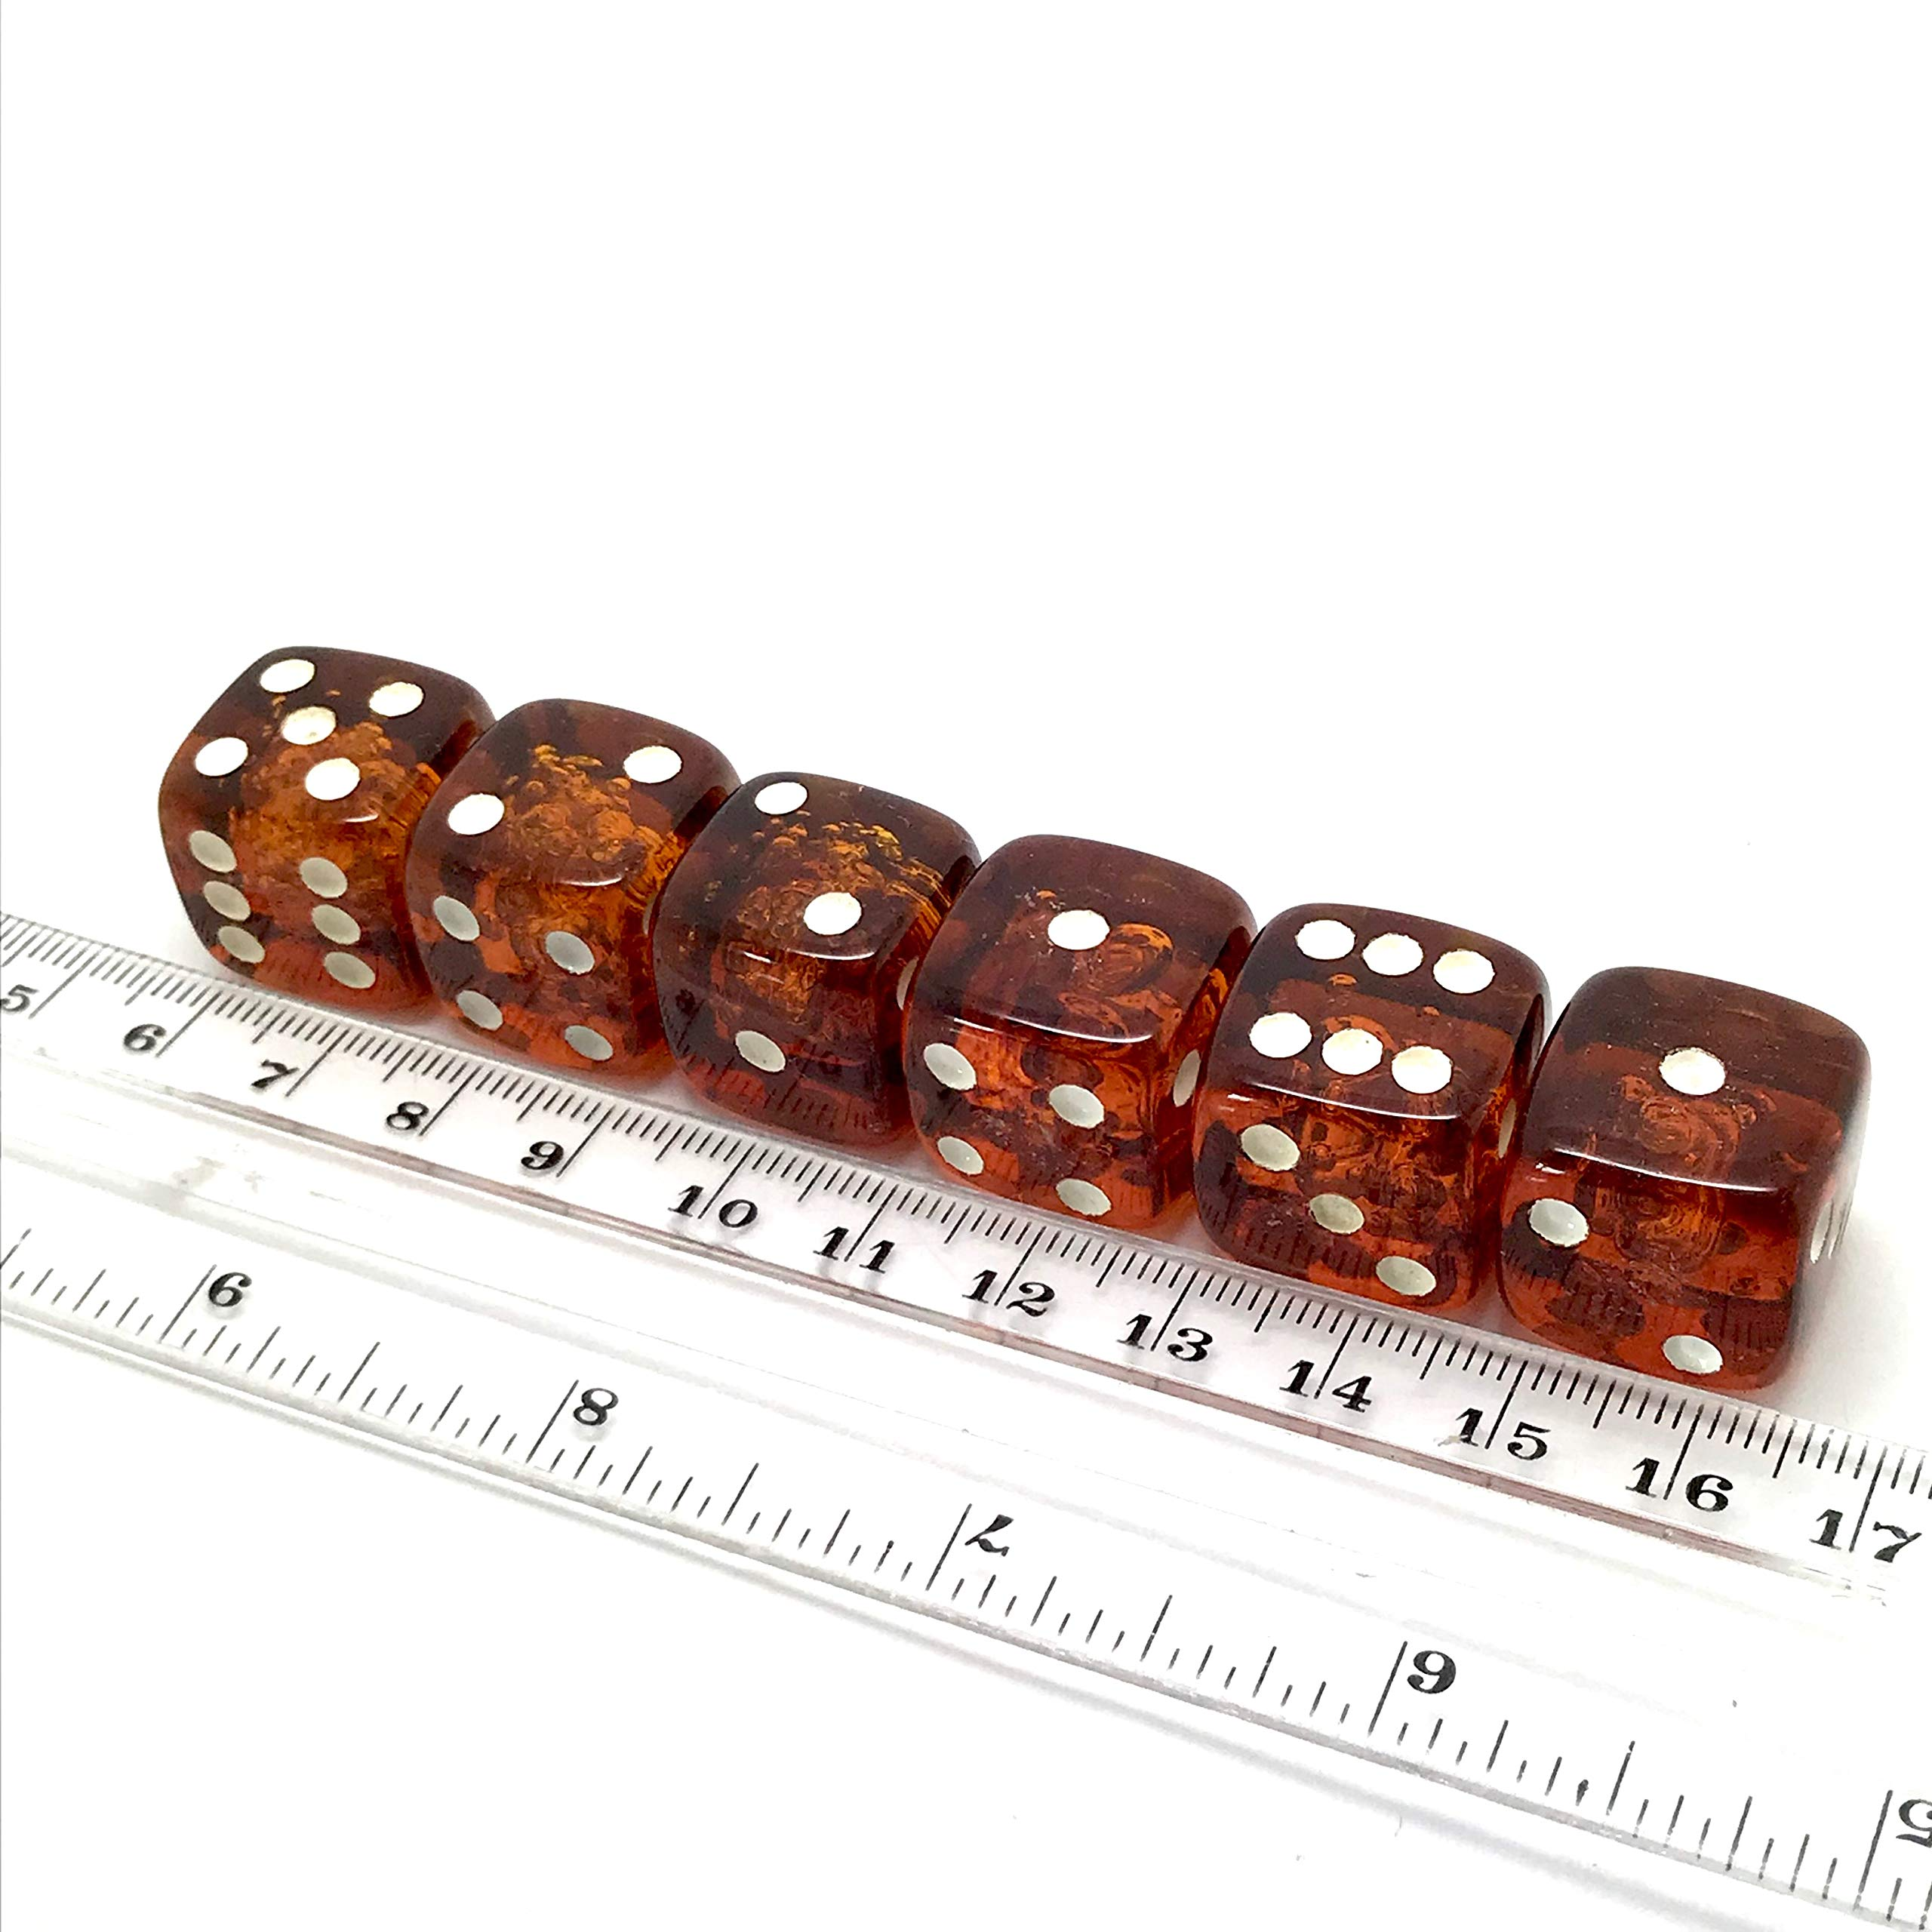 x6 Proper size Amber Dice set for Board games and Gambling by Generic (Image #6)